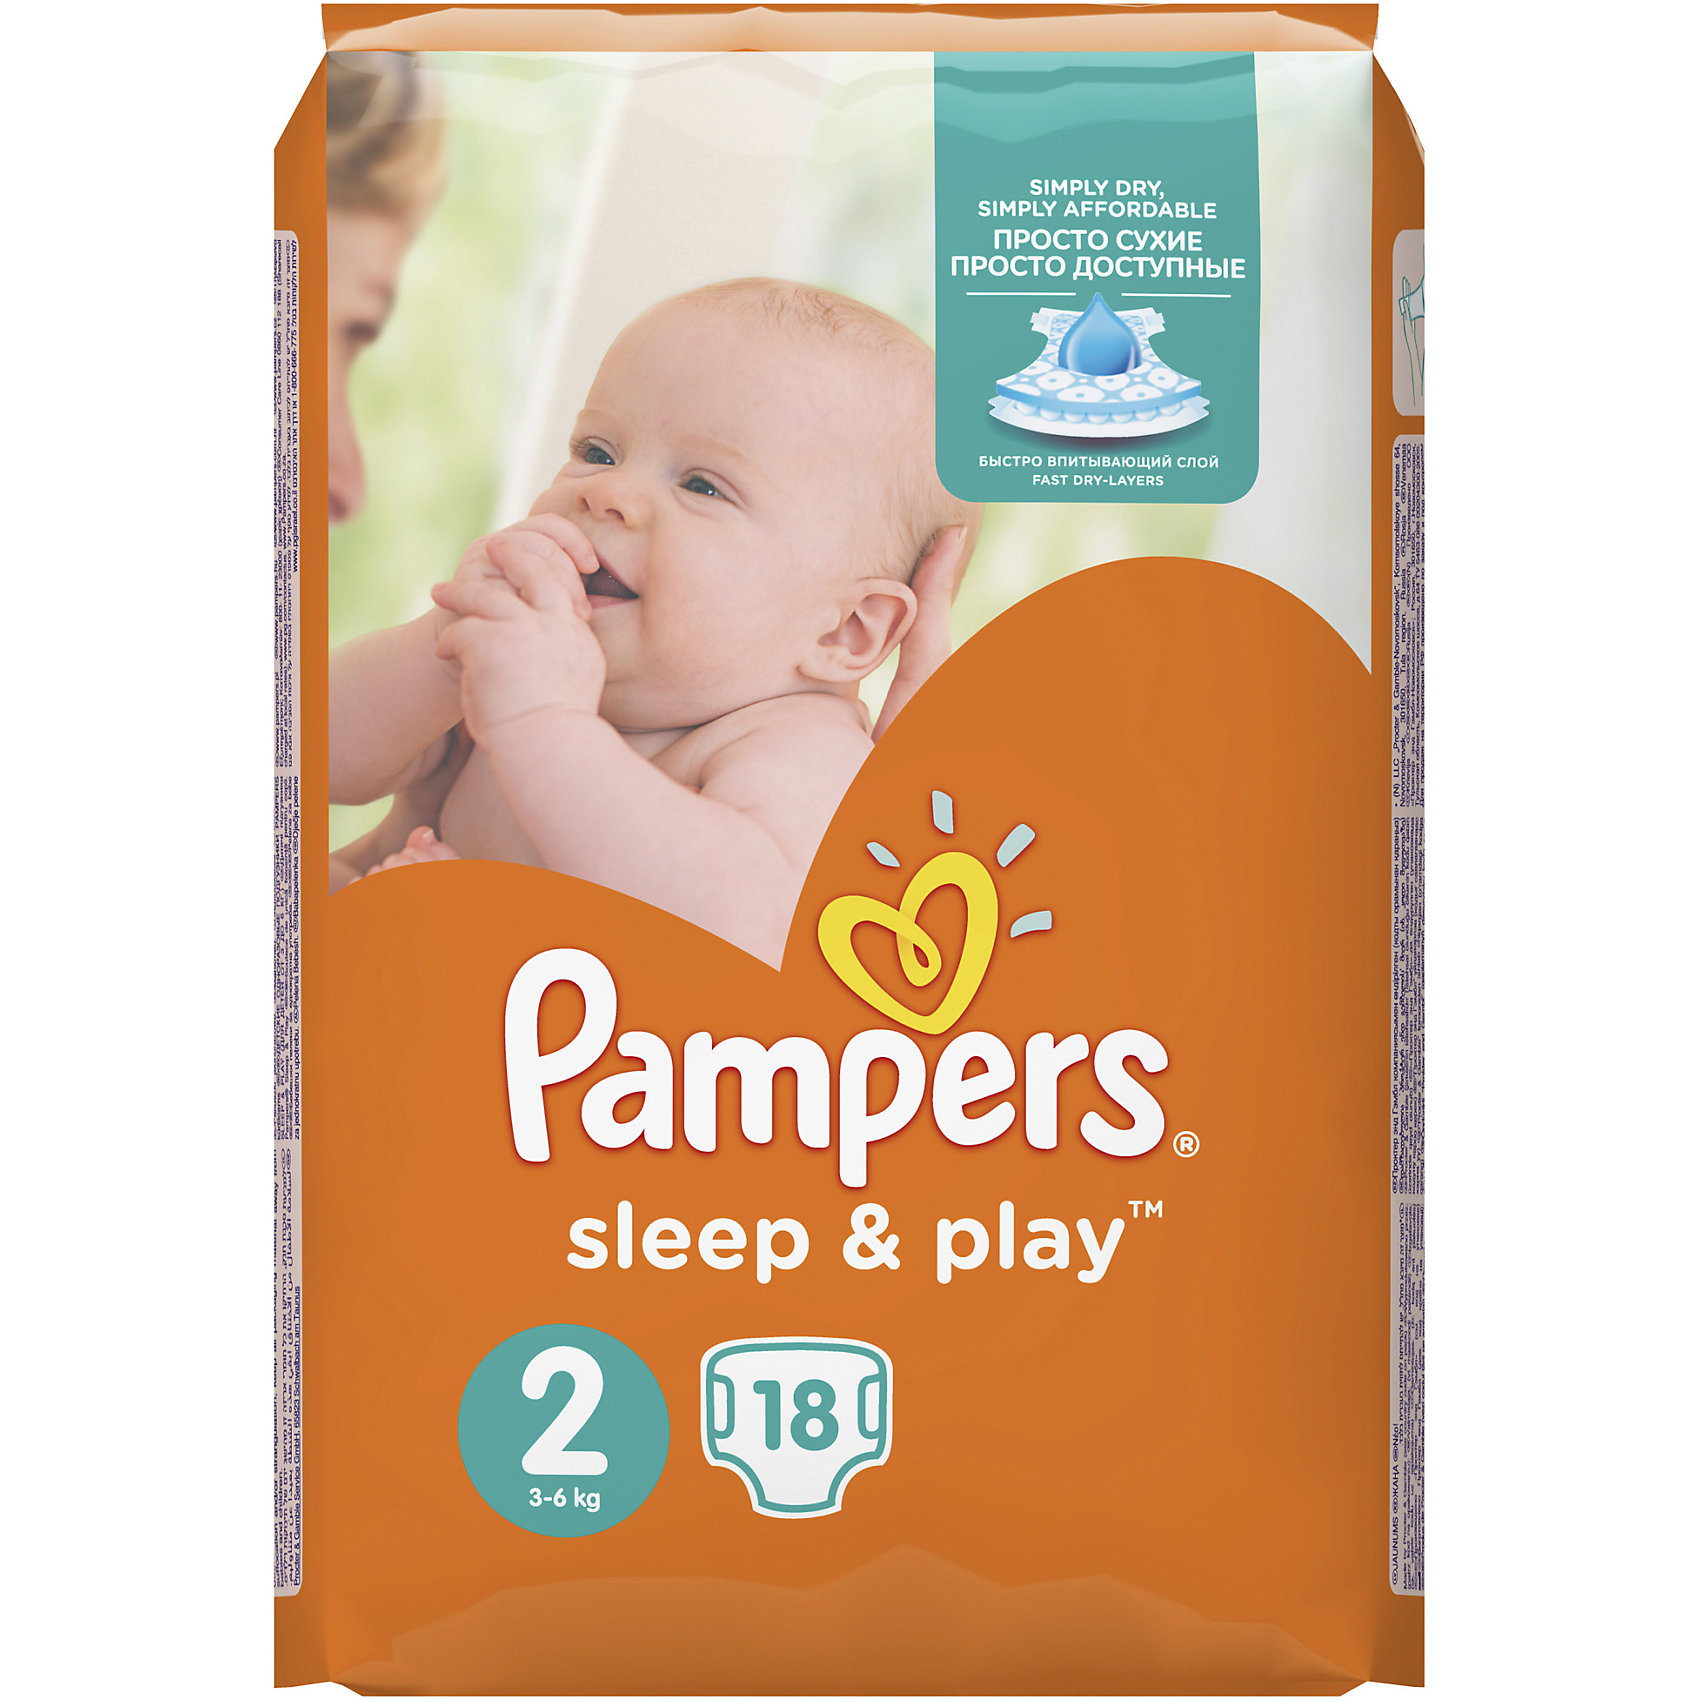 Подгузники Pampers Sleep  Play Mini, 3-6 кг., 18 шт.